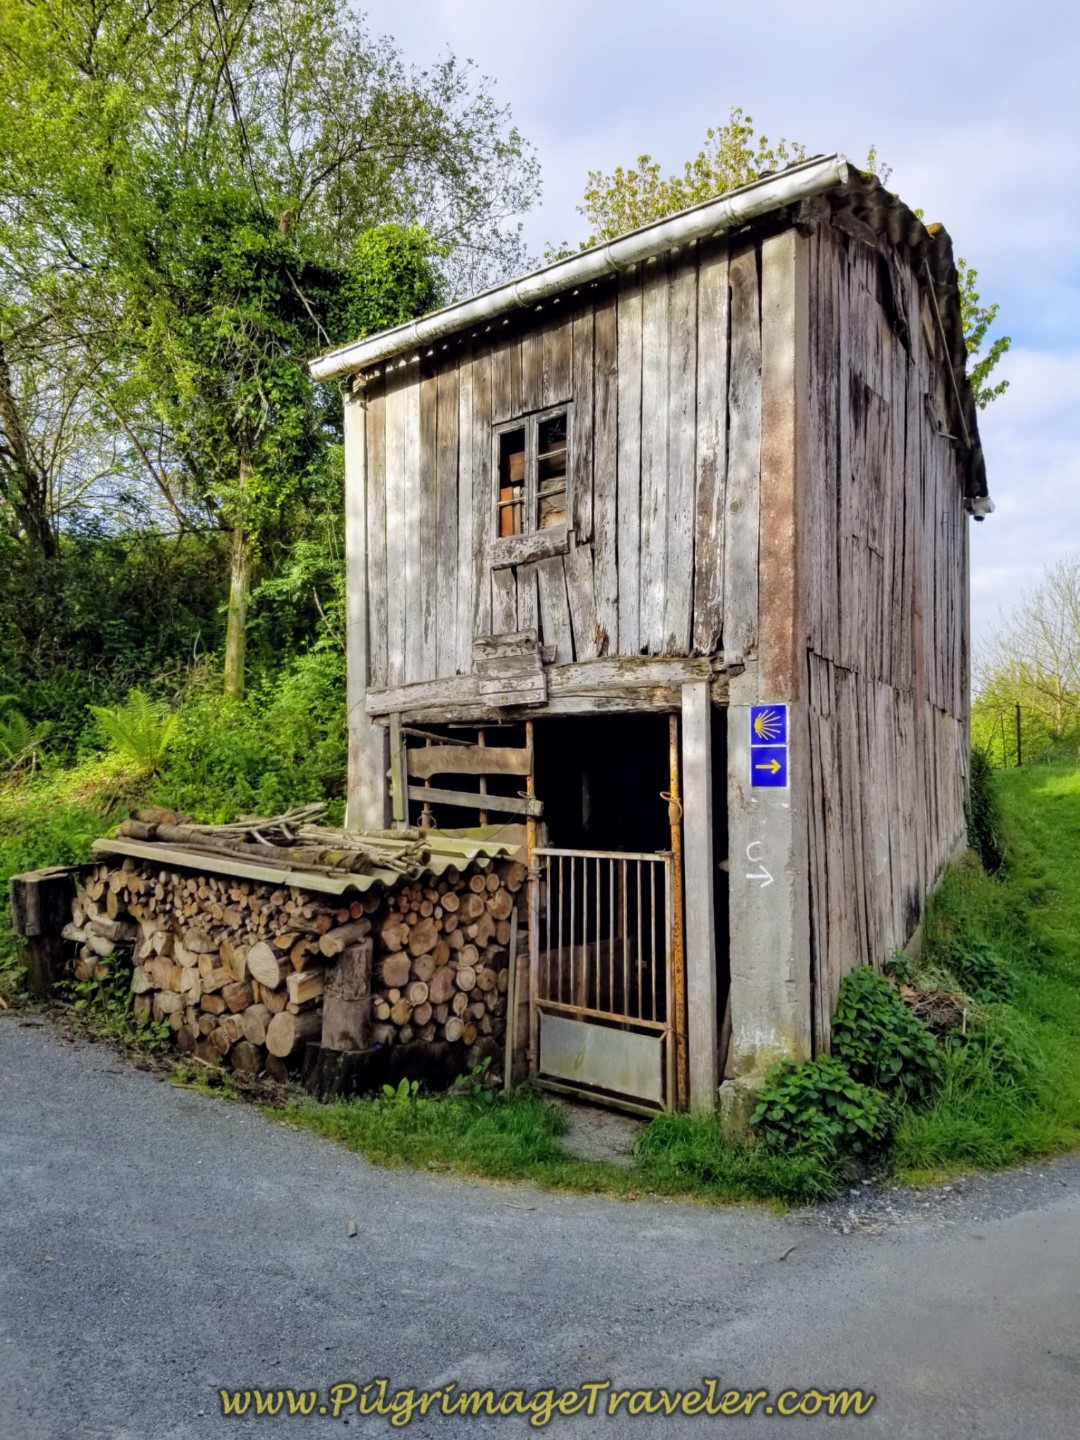 Turn Right at Quaint Woodshed on Day four of the Camino Inglés